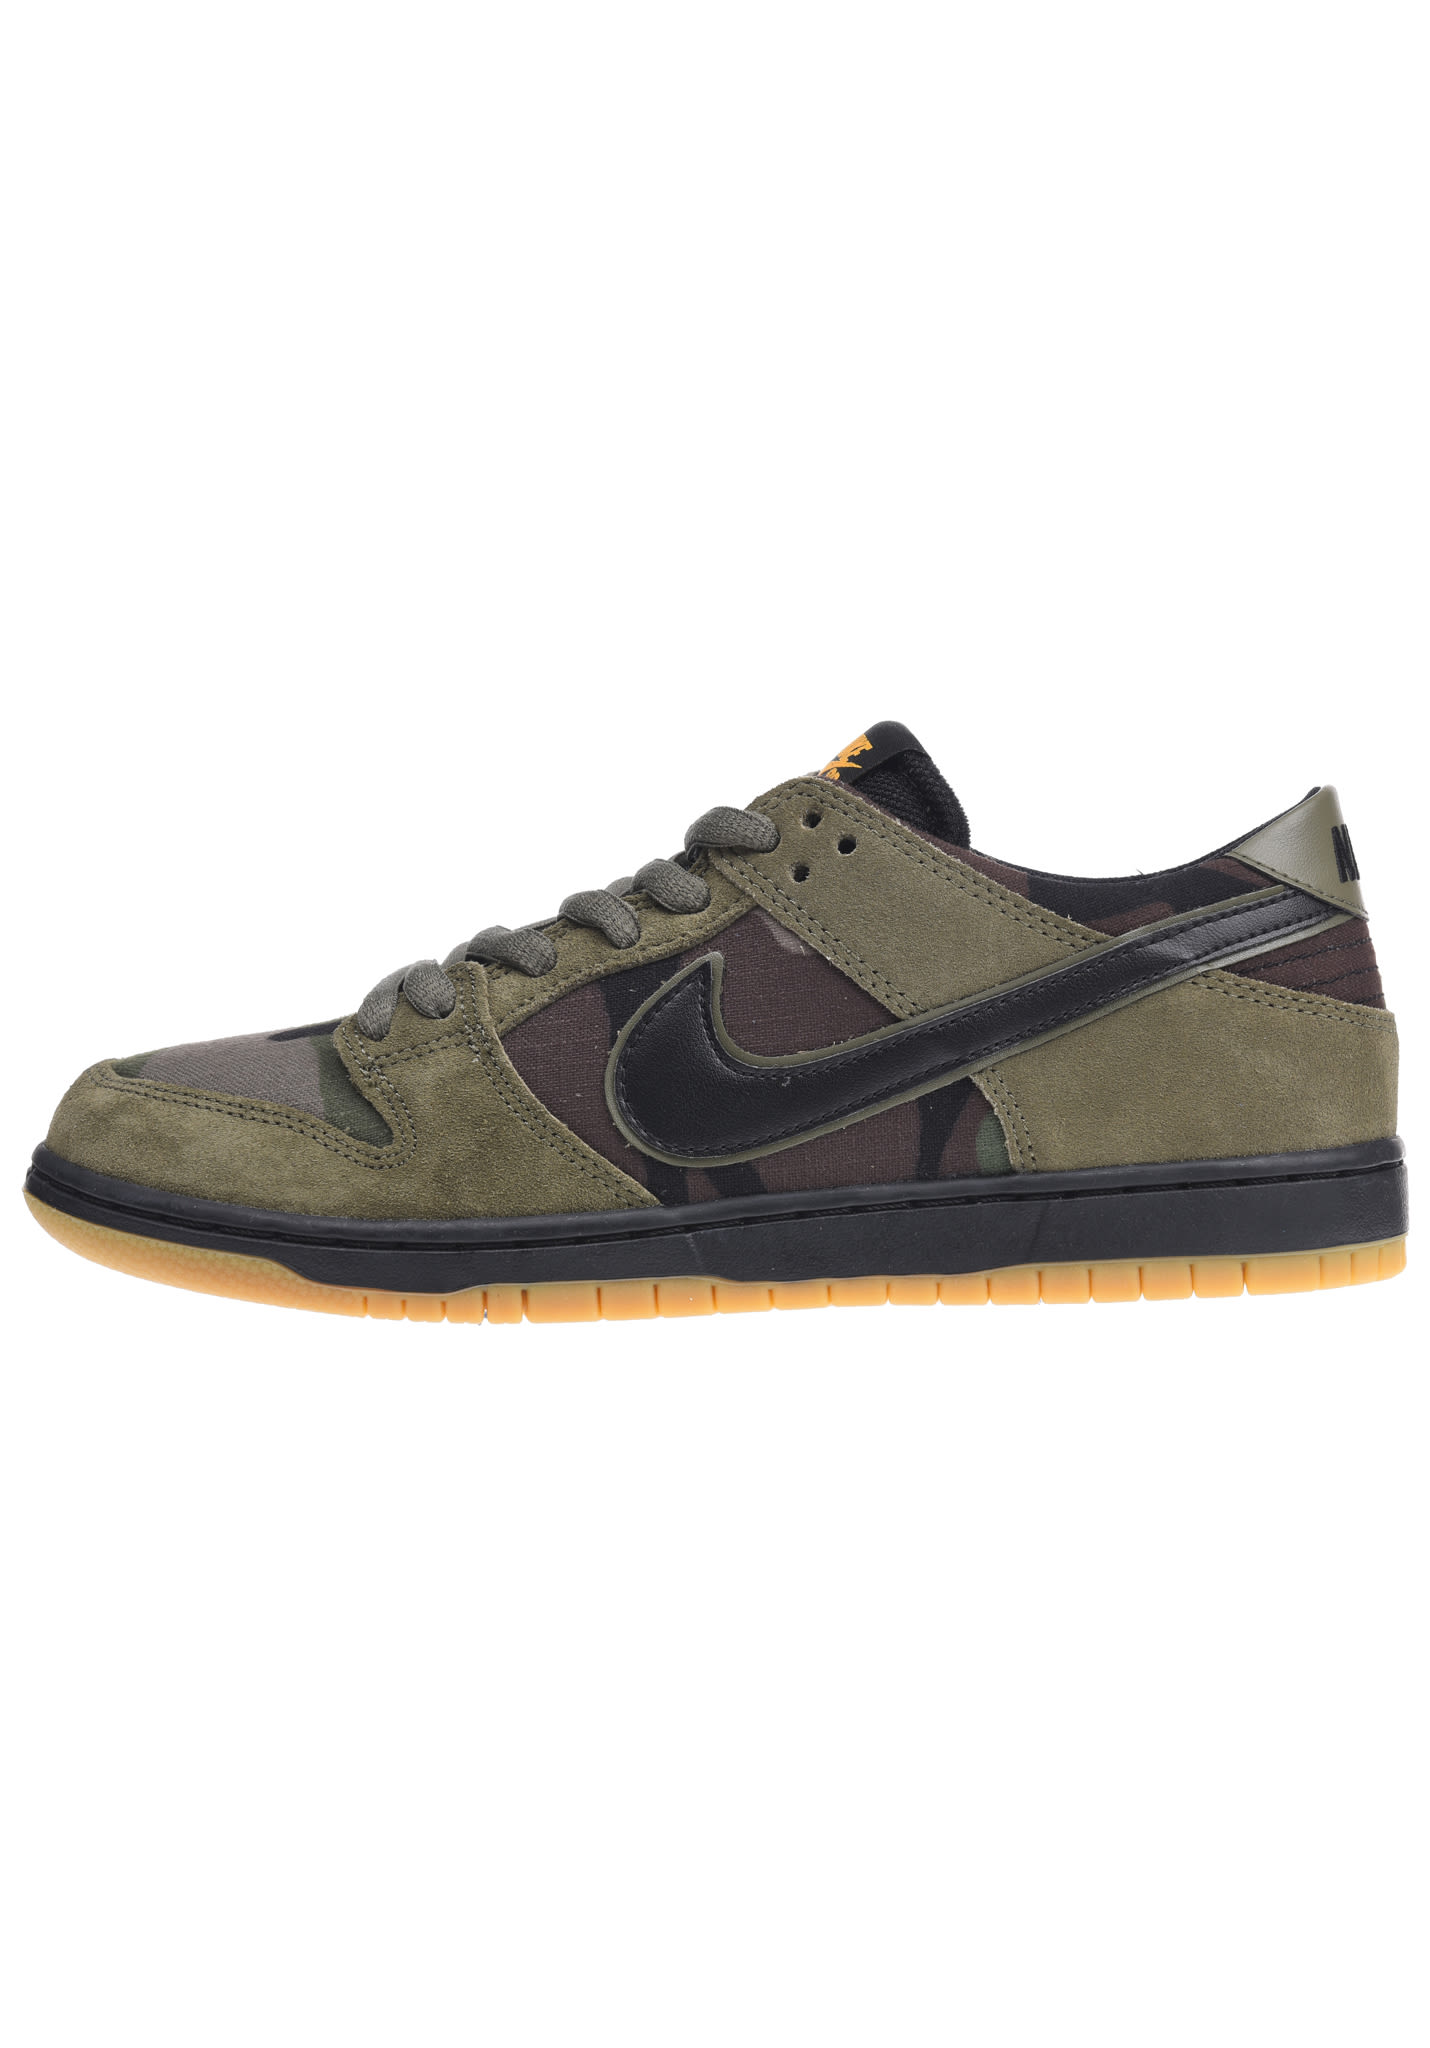 new arrival 5d808 3d675 NIKE SB Zoom Dunk Low Pro - Sneakers for Men - Camo - Planet